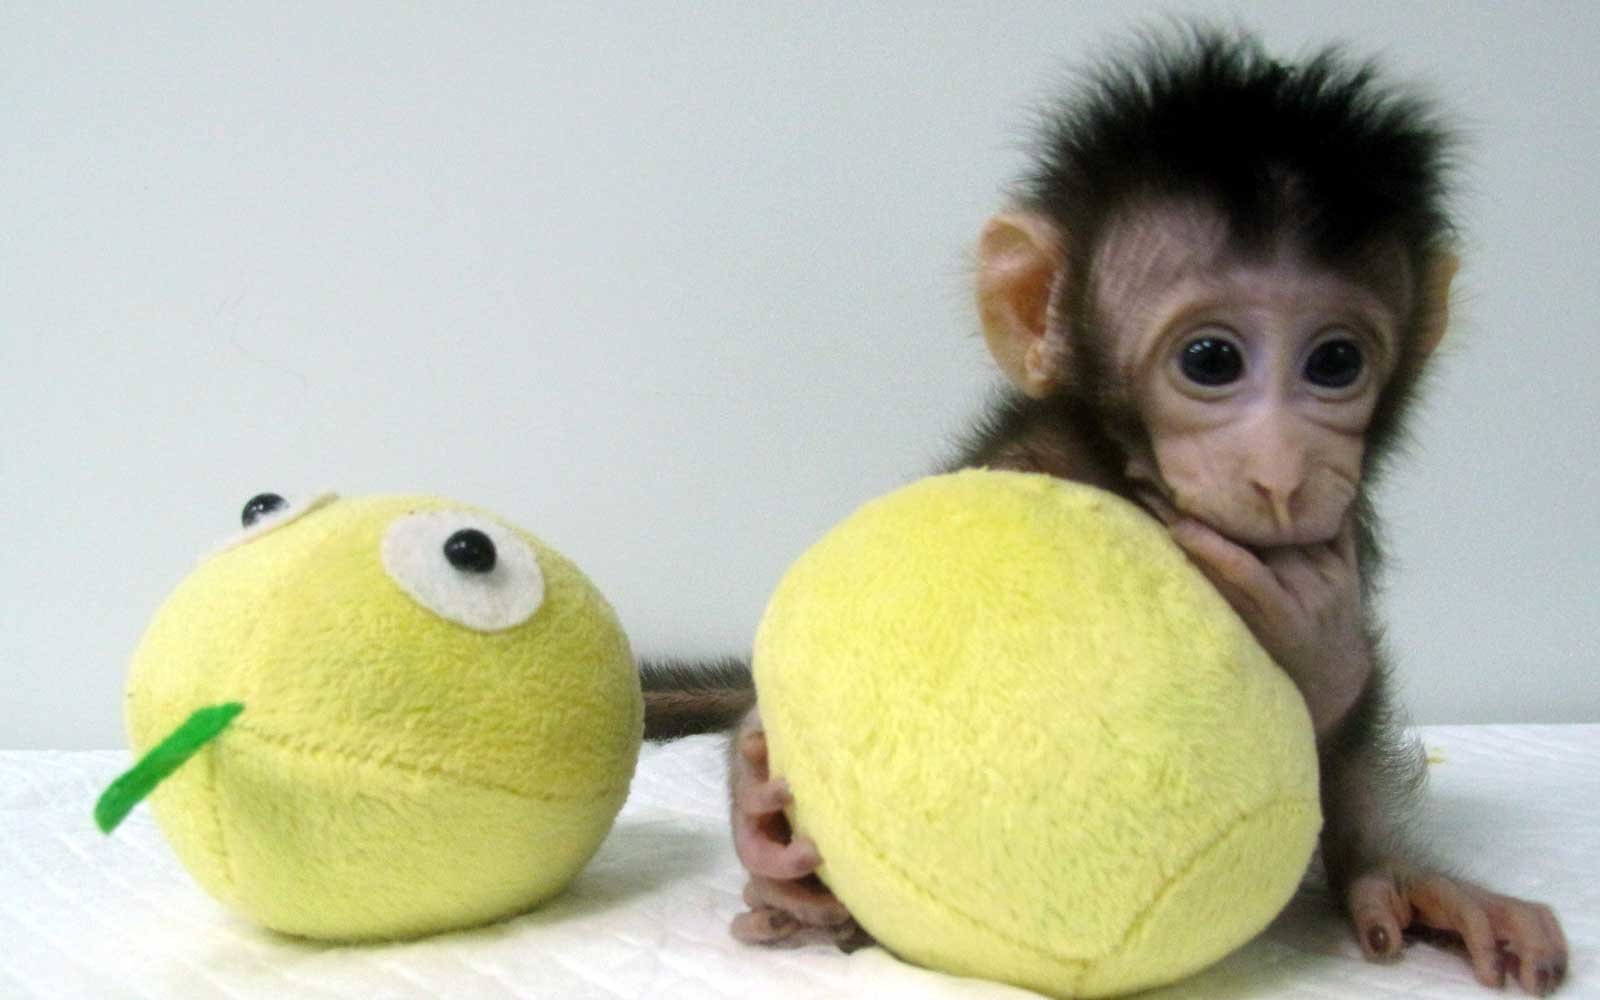 Scientists clone primates for 1st time, are humans up next? (PHOTOS, VIDEOS)